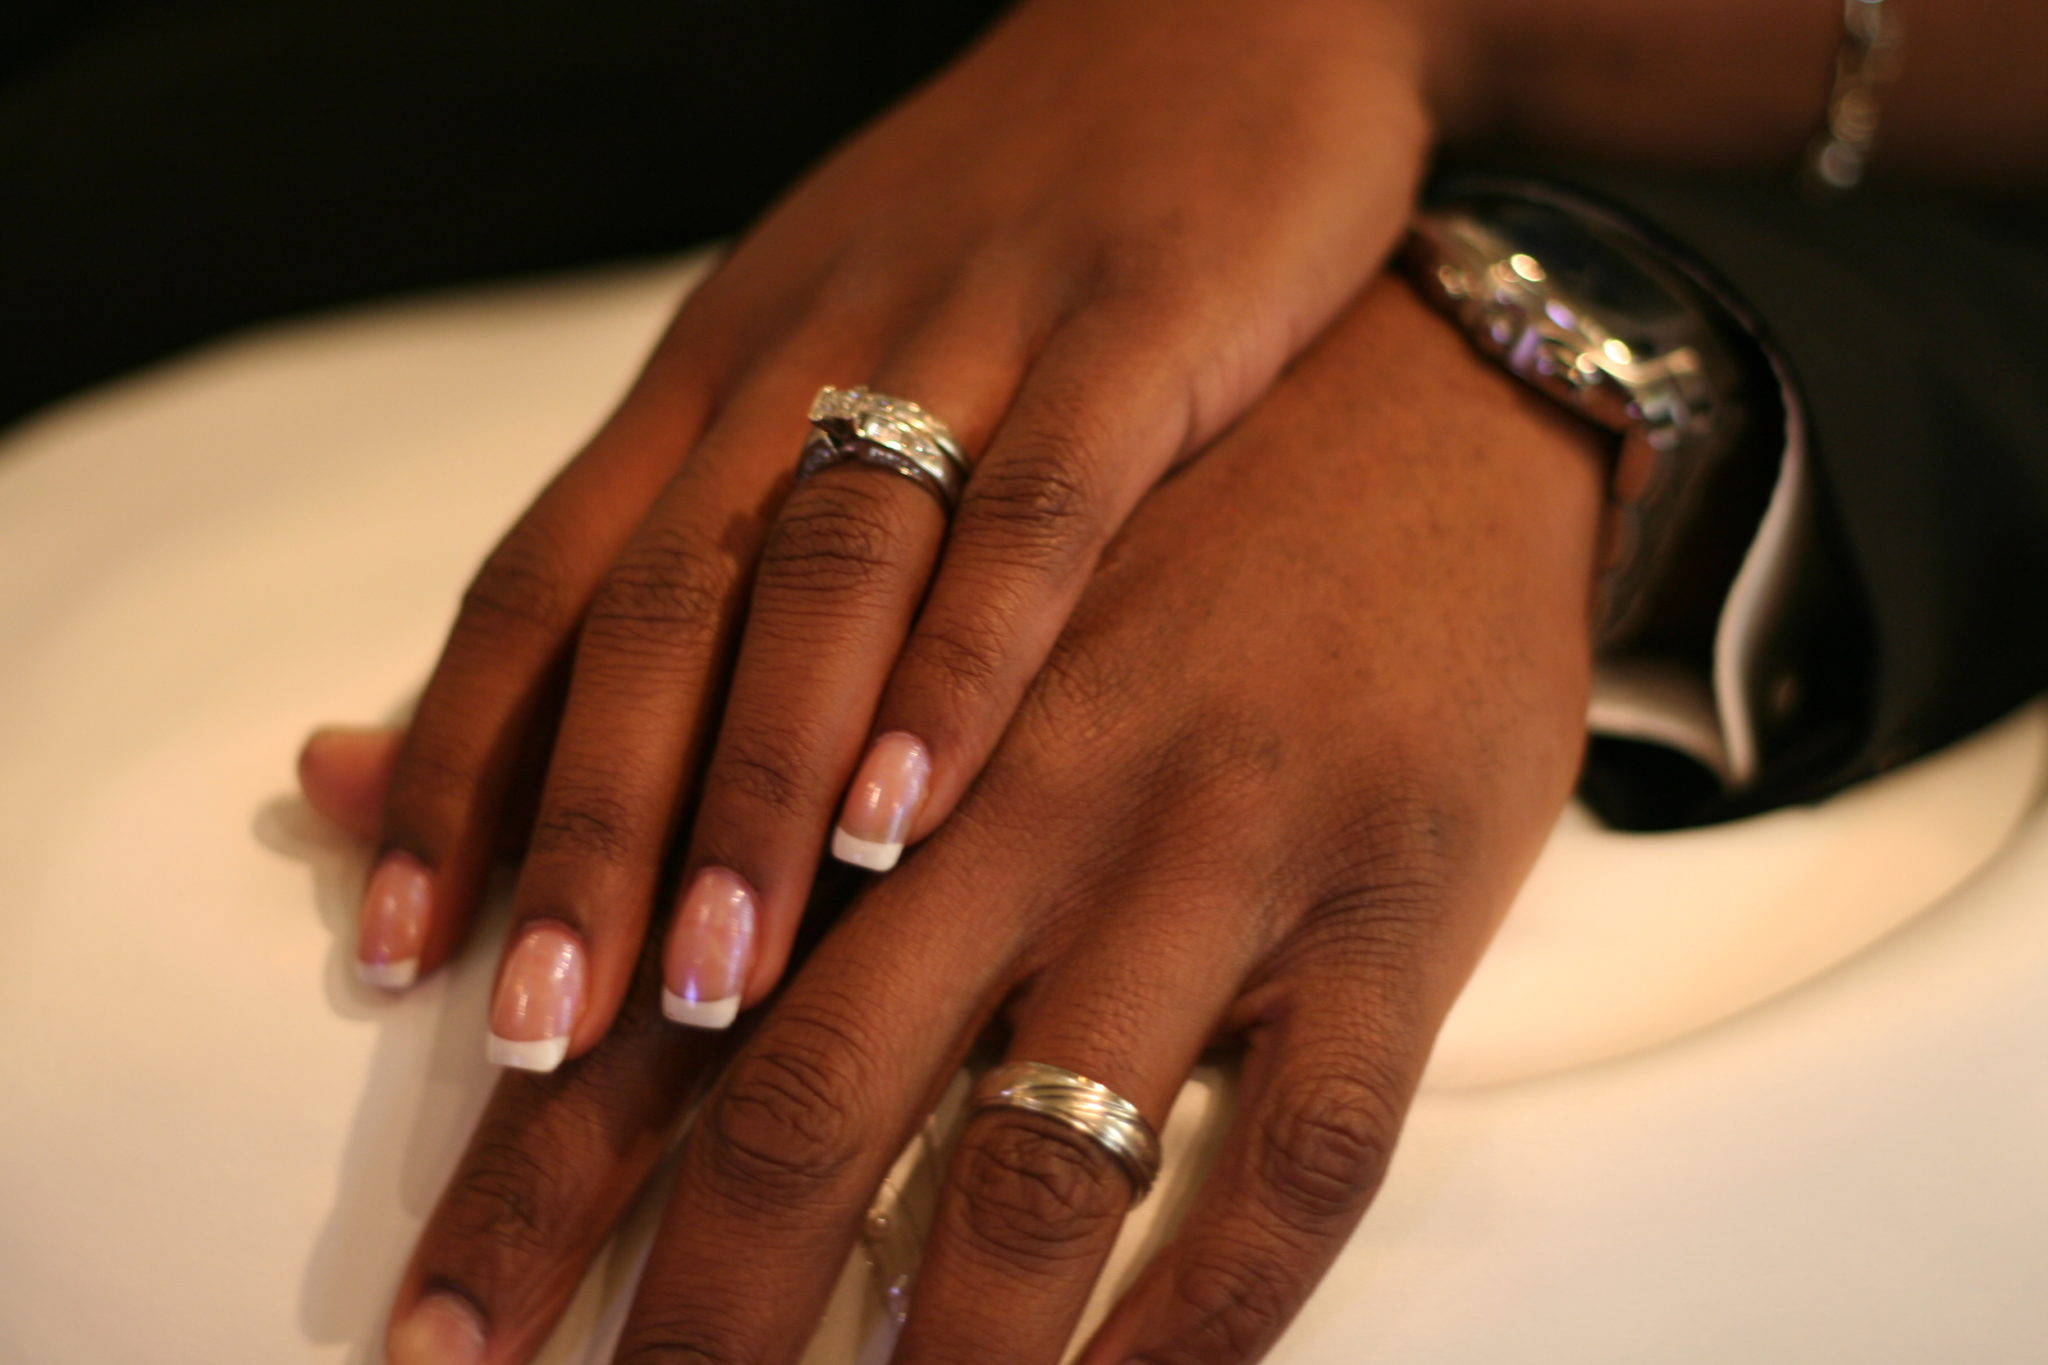 black single men in niles A new poll of african-americans found one bit of data that raised some eyebrows: single black men were much more interested in long-term relationships than single black women.